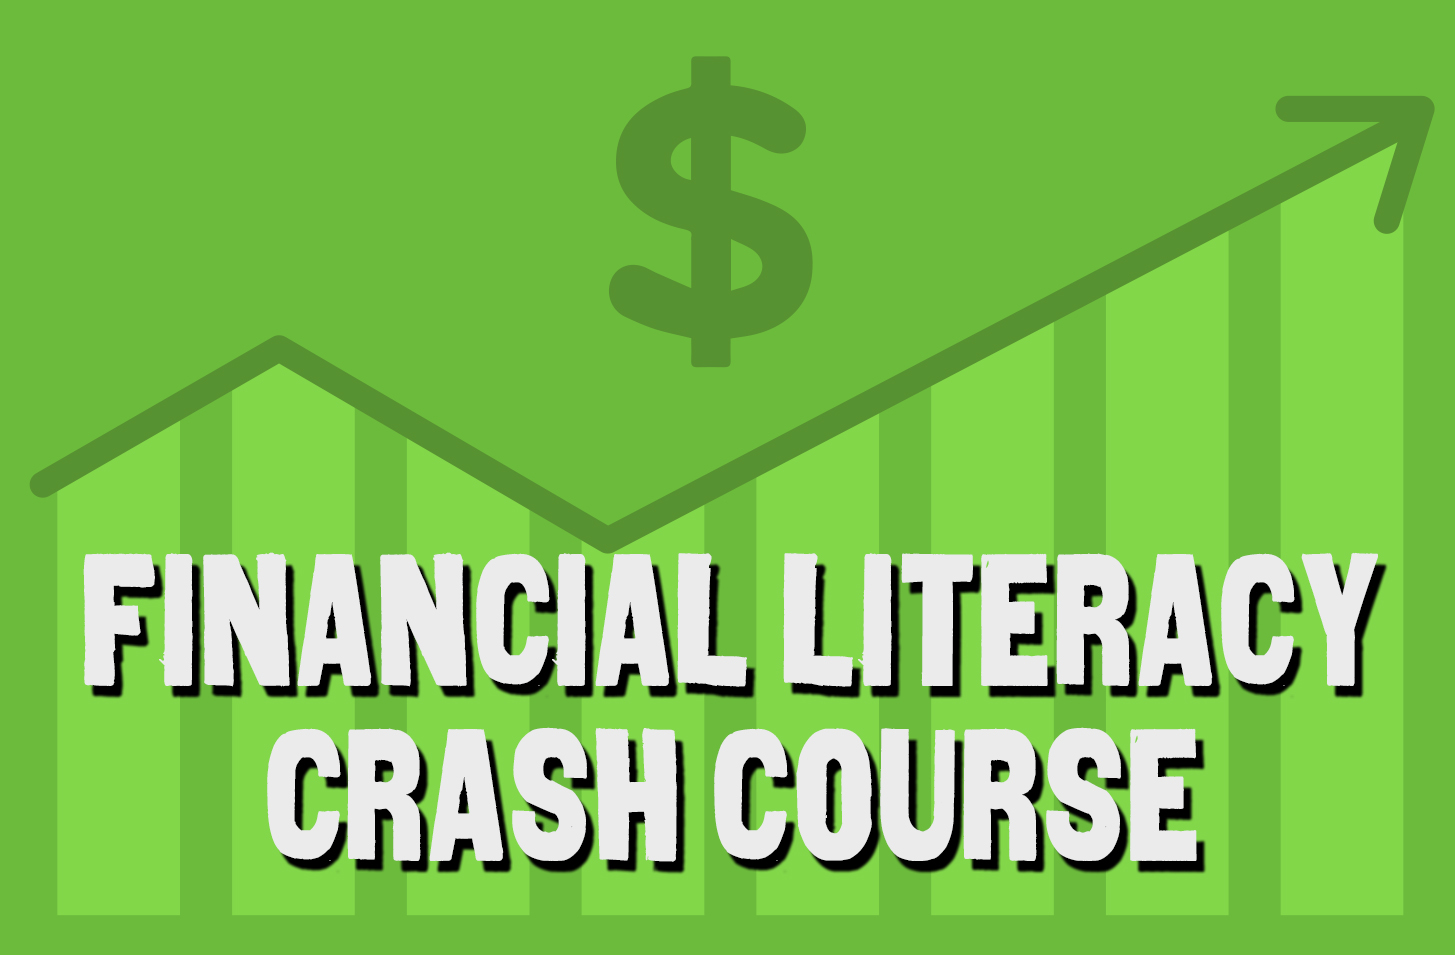 Financial Literacy Crash Course.jpg